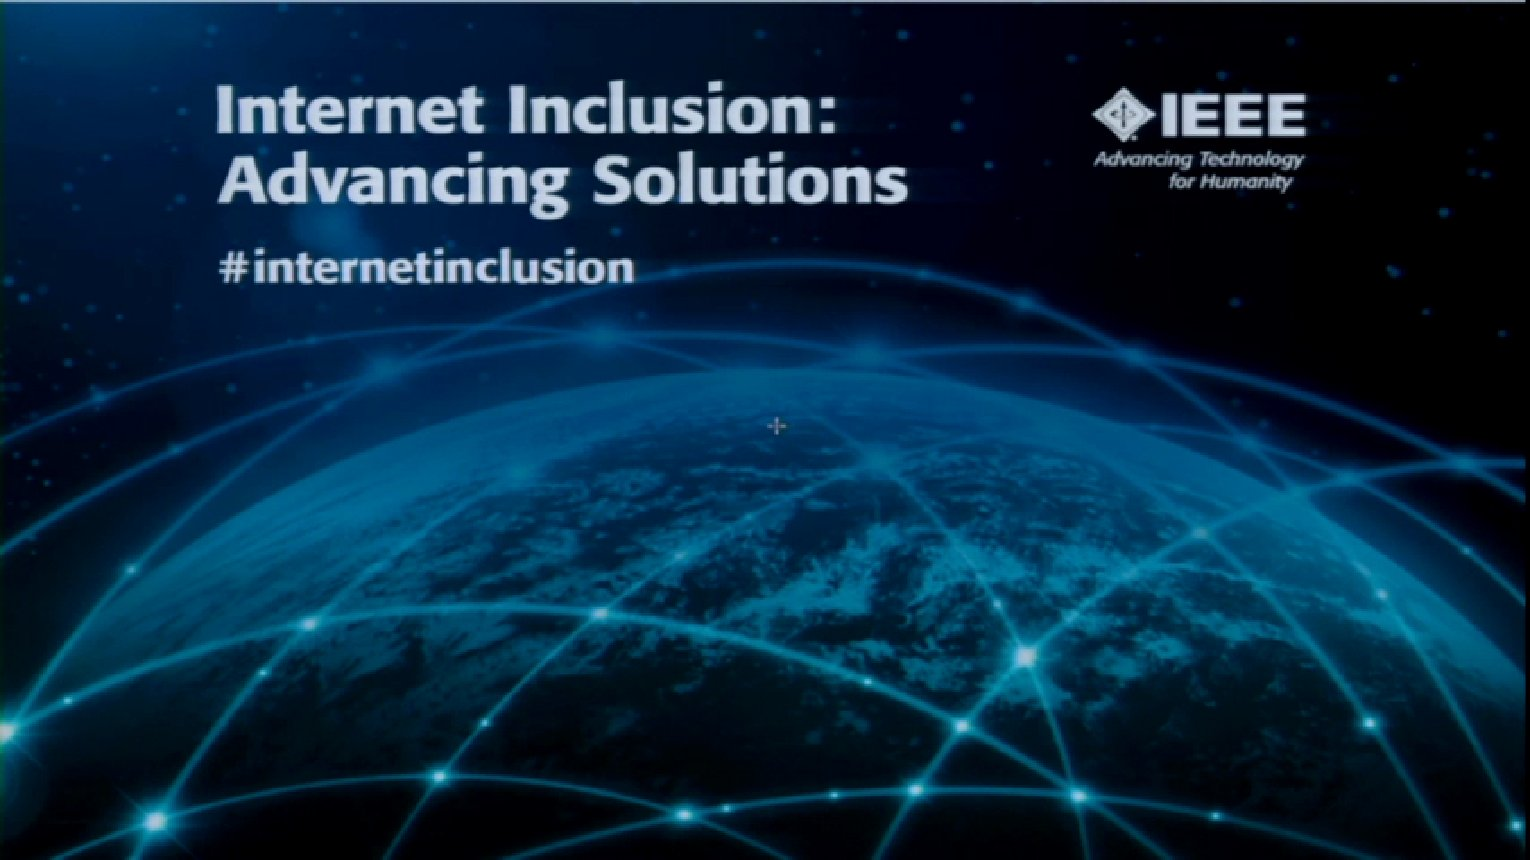 Internet Inclusion: Advancing Solutions April 2017 - Full Stream